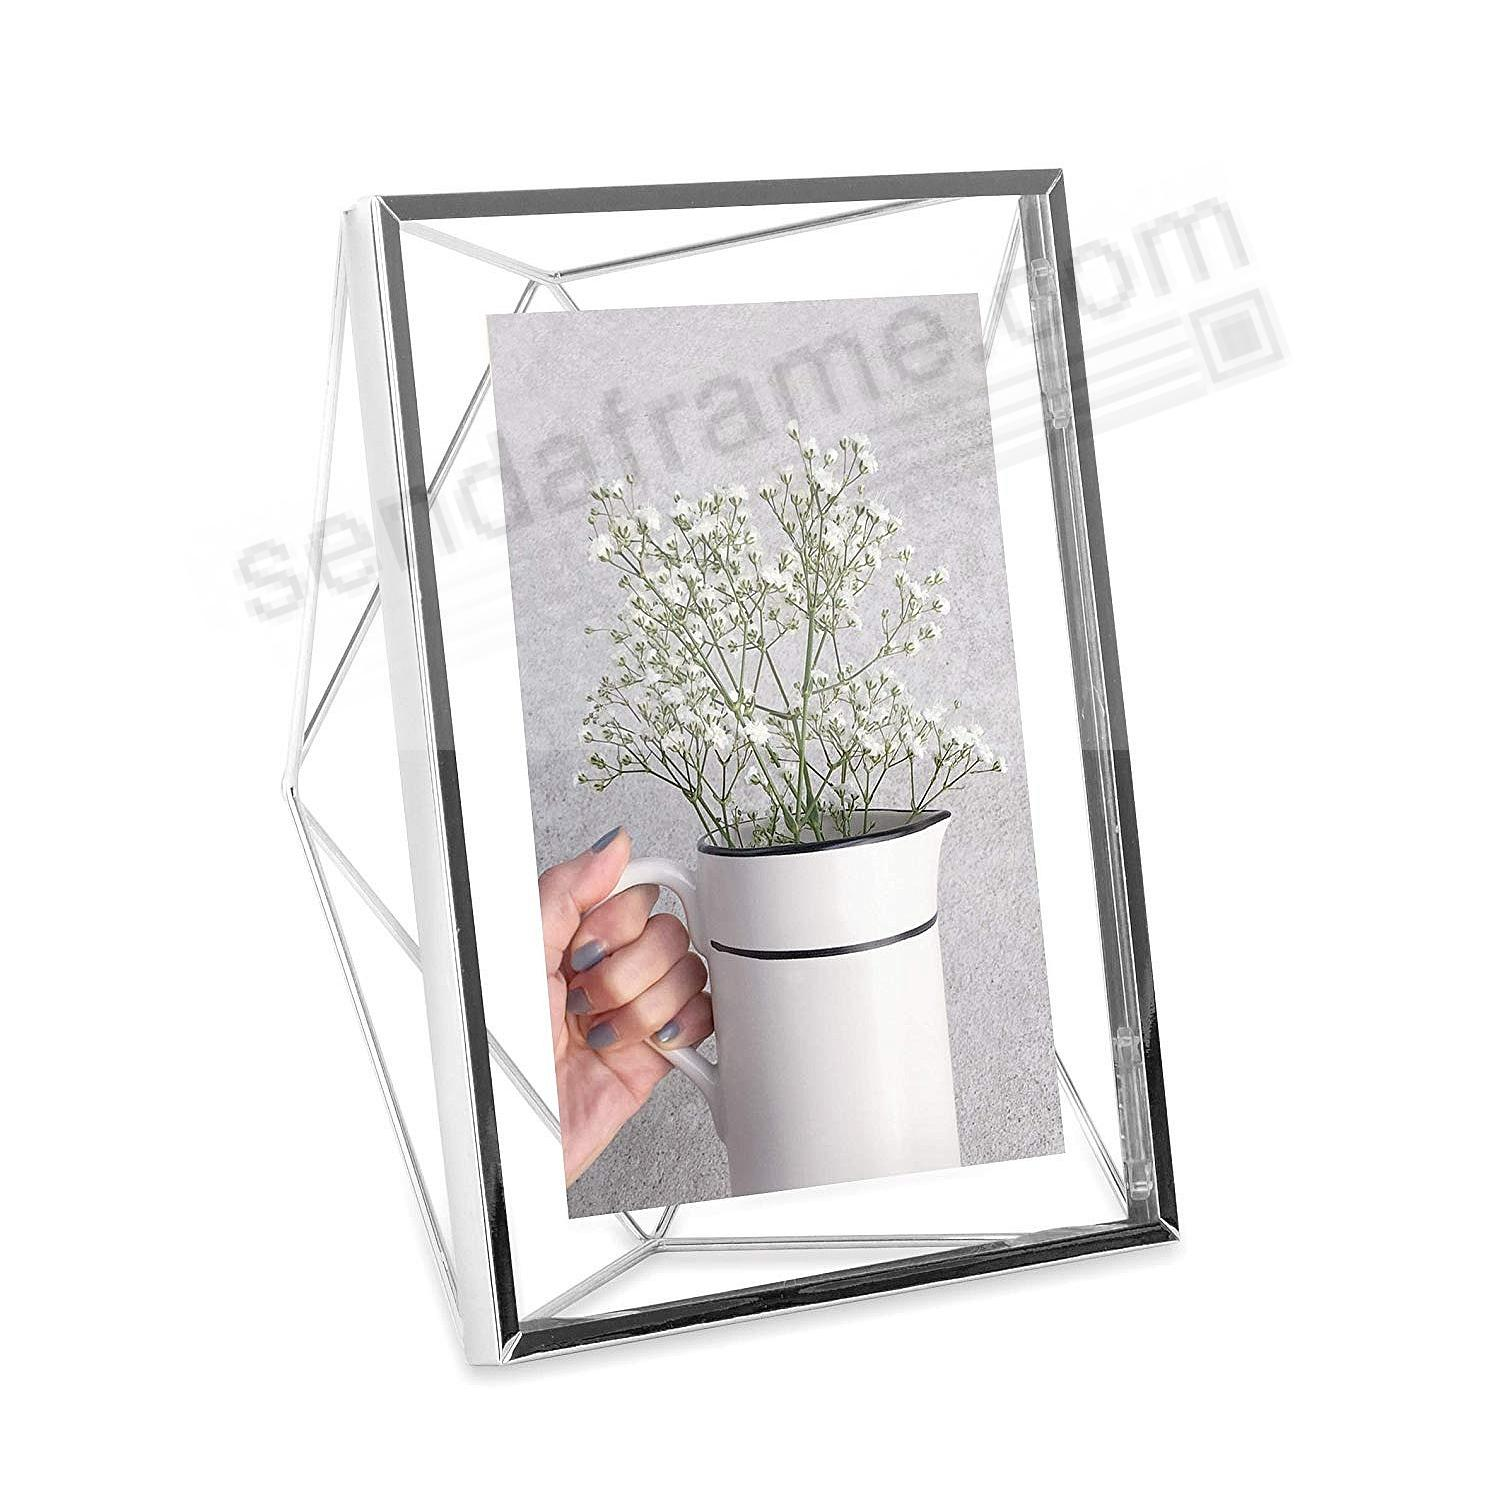 The Original PRISMA Photo Display Chrome 5x7 frame by Umbra®